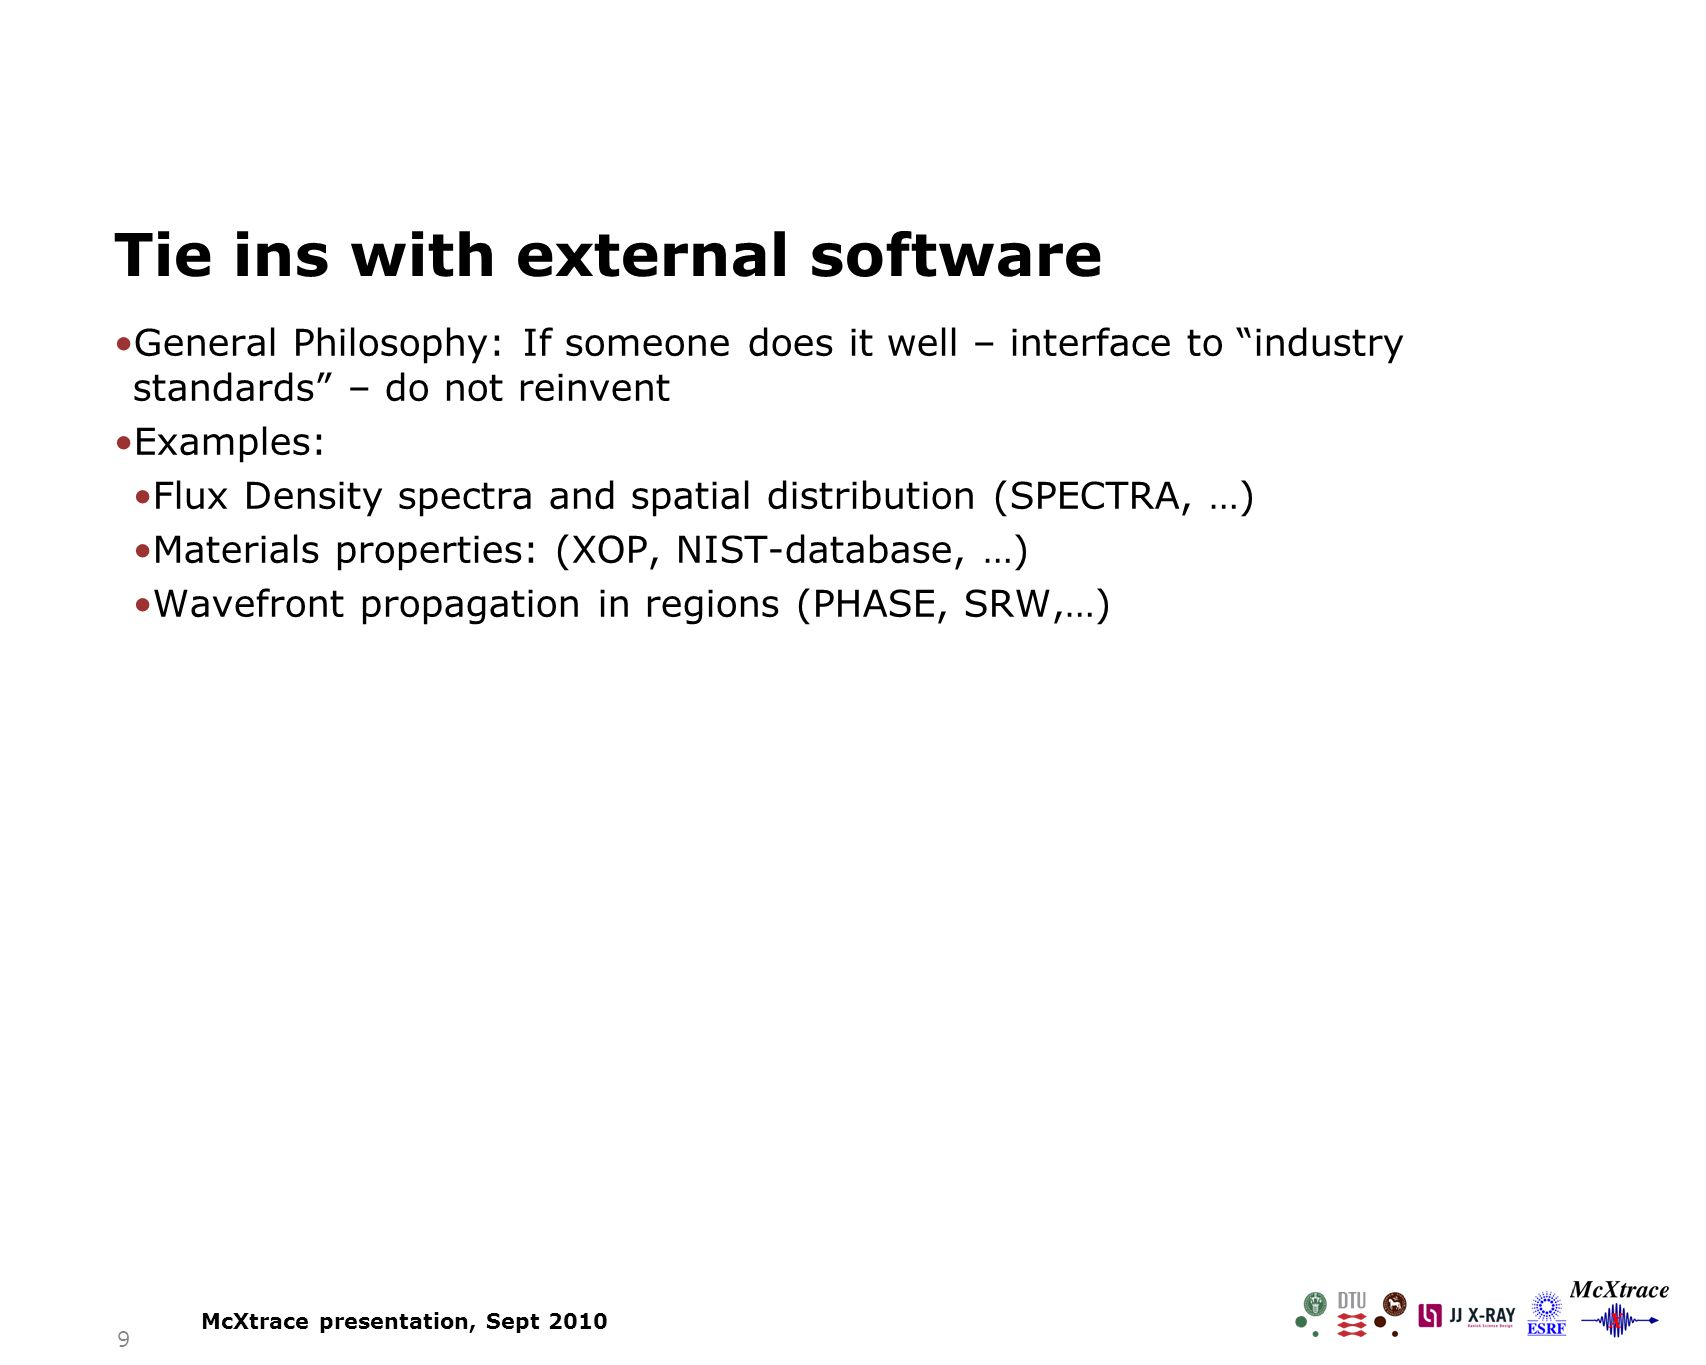 9 Tie ins with external software General Philosophy: If someone does it well – interface to industry standards – do not reinvent Examples: Flux Density spectra and spatial distribution (SPECTRA, …) Materials properties: (XOP, NIST-database, …) Wavefront propagation in regions (PHASE, SRW,…) McXtrace presentation, Sept 2010